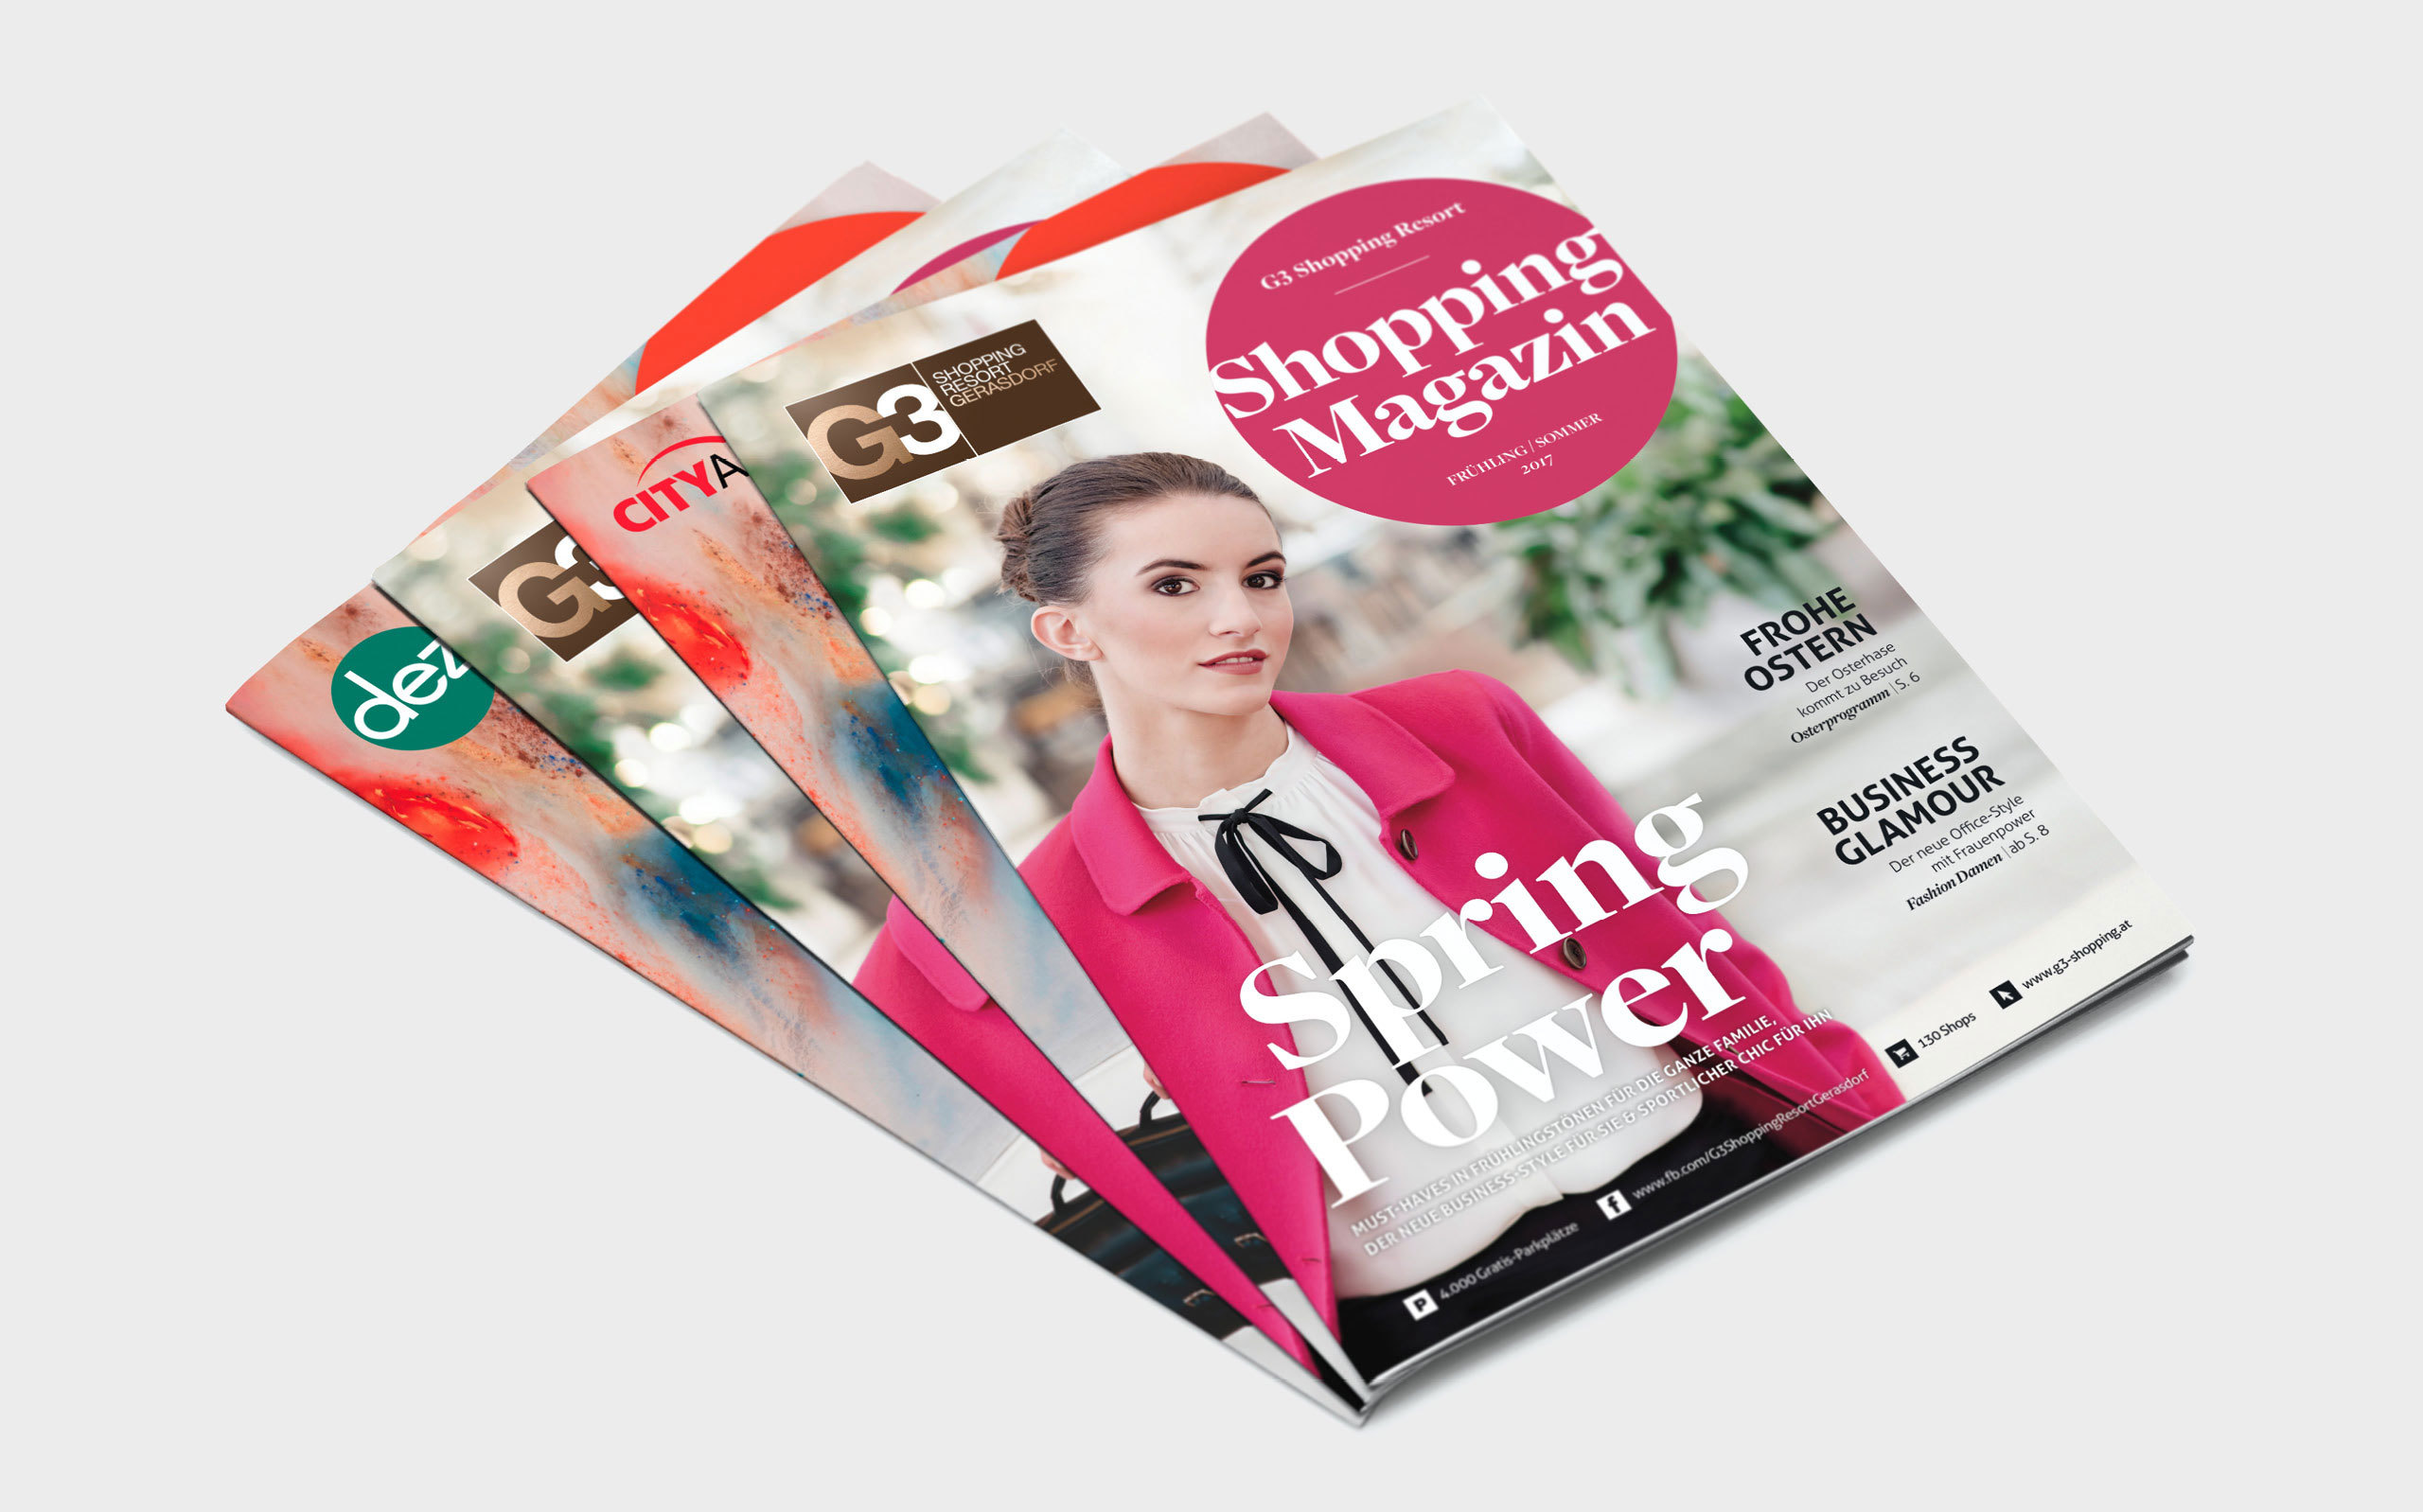 Shoppingmagazin